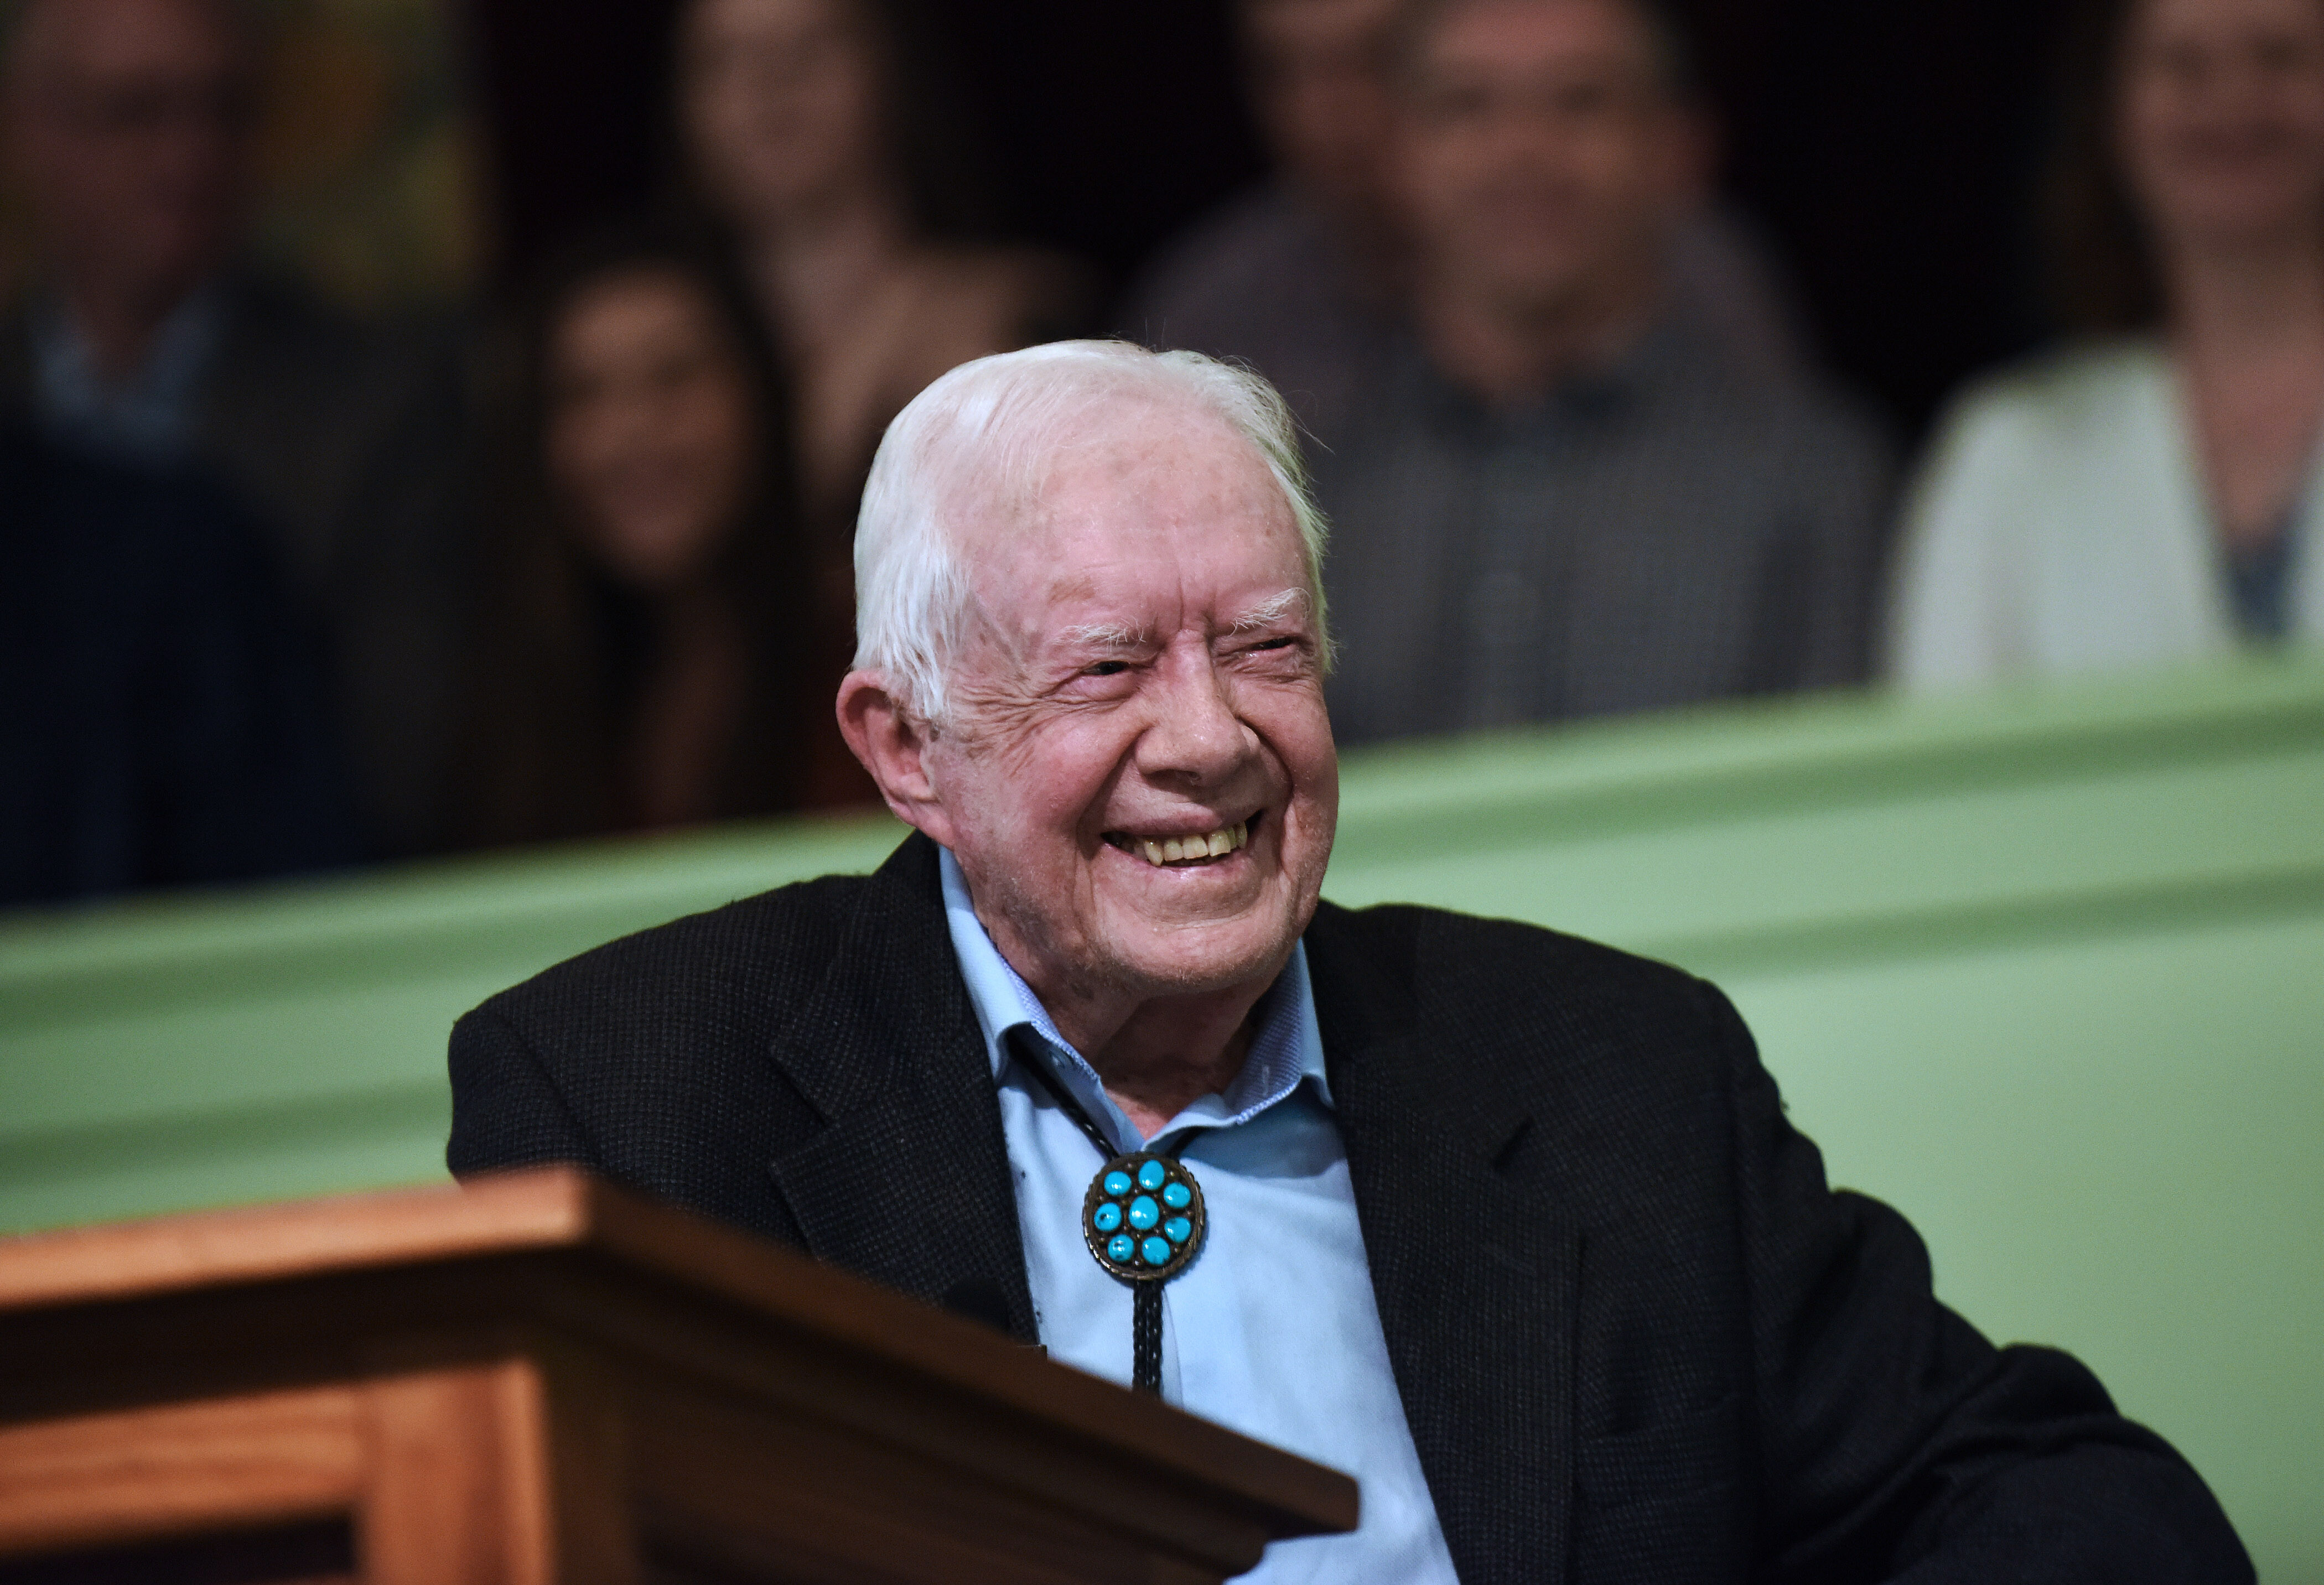 Former President Jimmy Carter celebrates his 97th birthday today